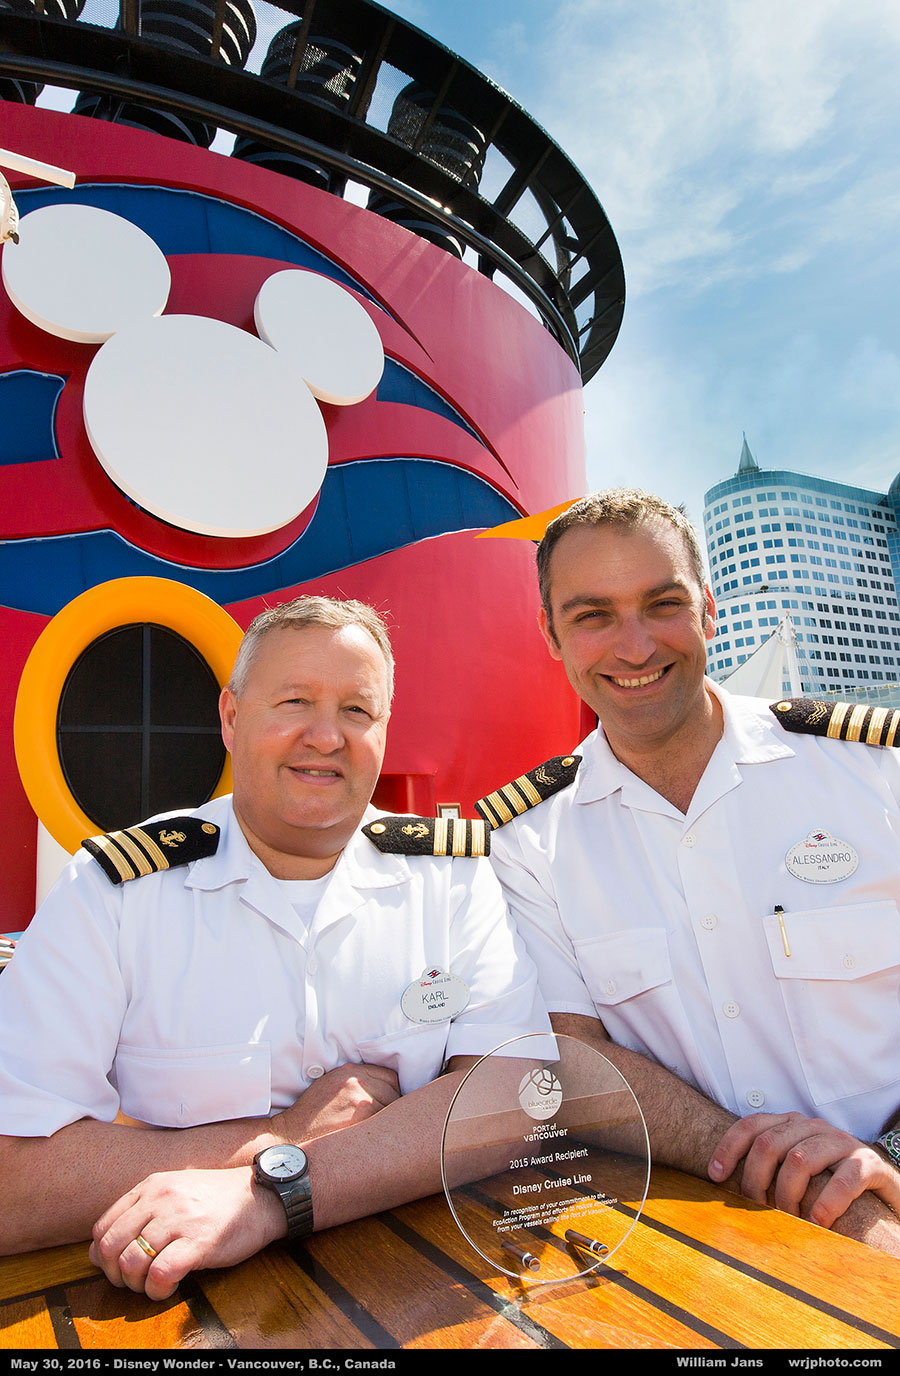 Chief Electrical Engineer Alessandro and Environmental Officer Karl receive the Port of Vancouver's 2015 Blue Circle Award on behalf of Disney Cruise Line.